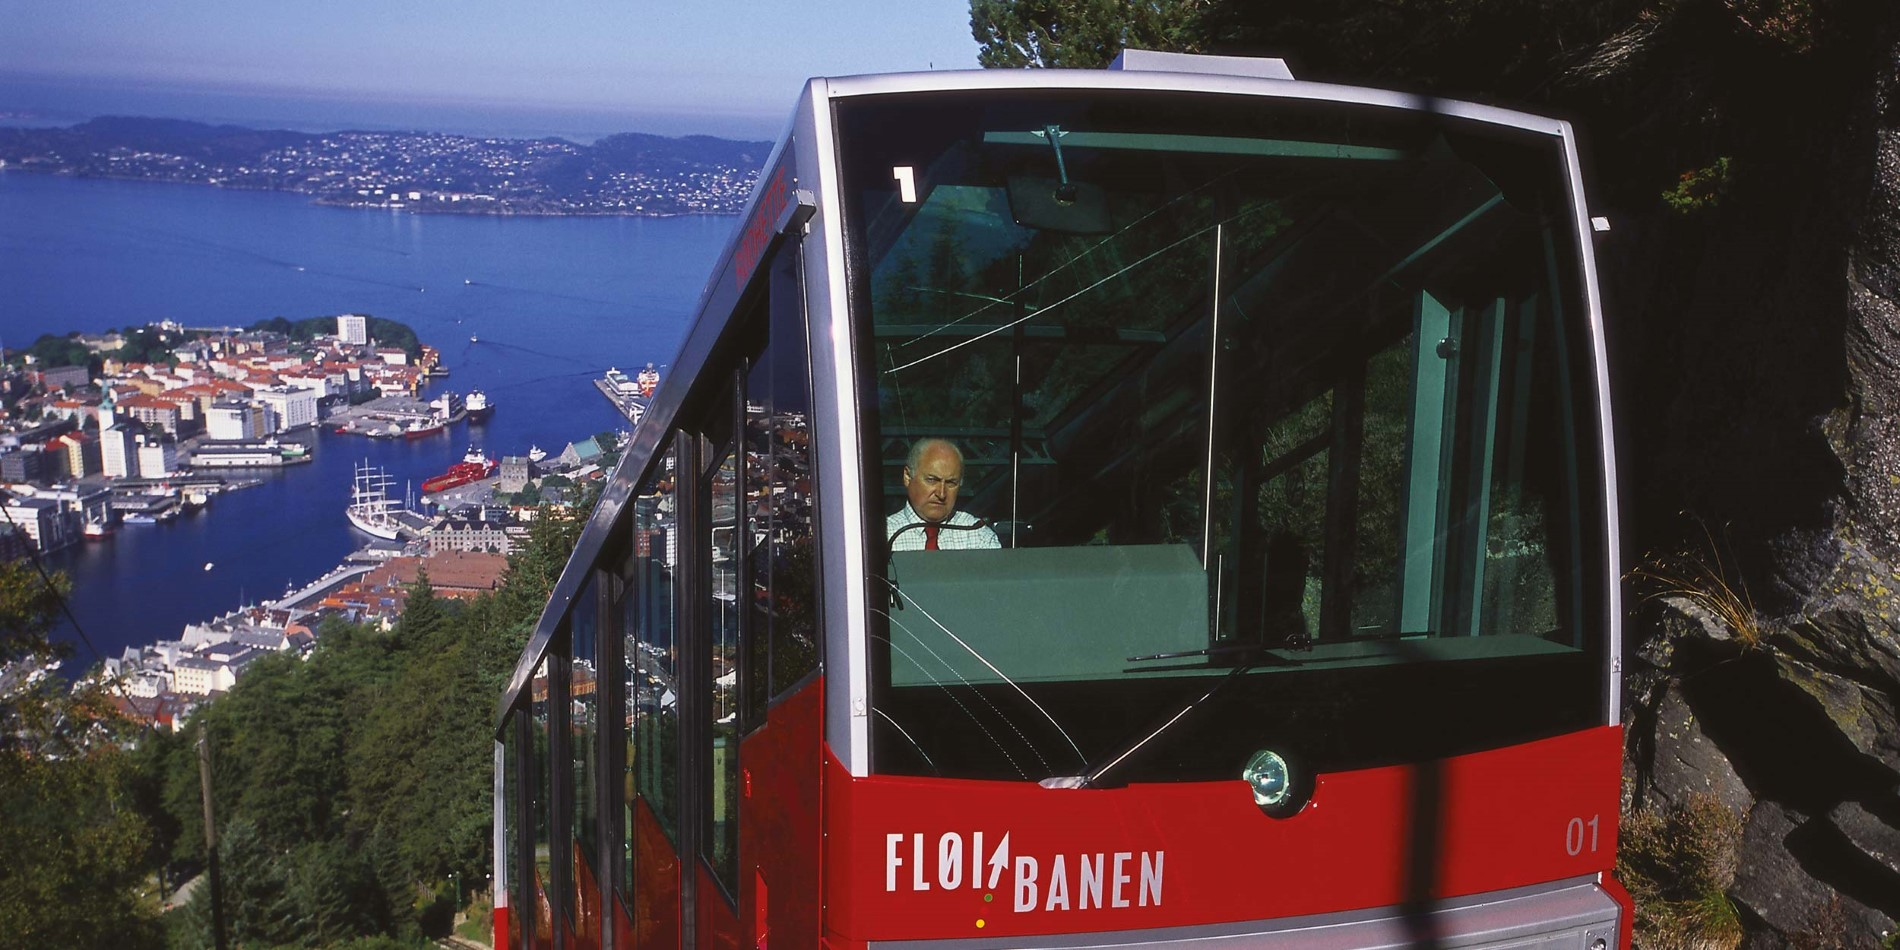 Ride the Fløibanen funicular to Mount Fløien and discover Bergen's mountains